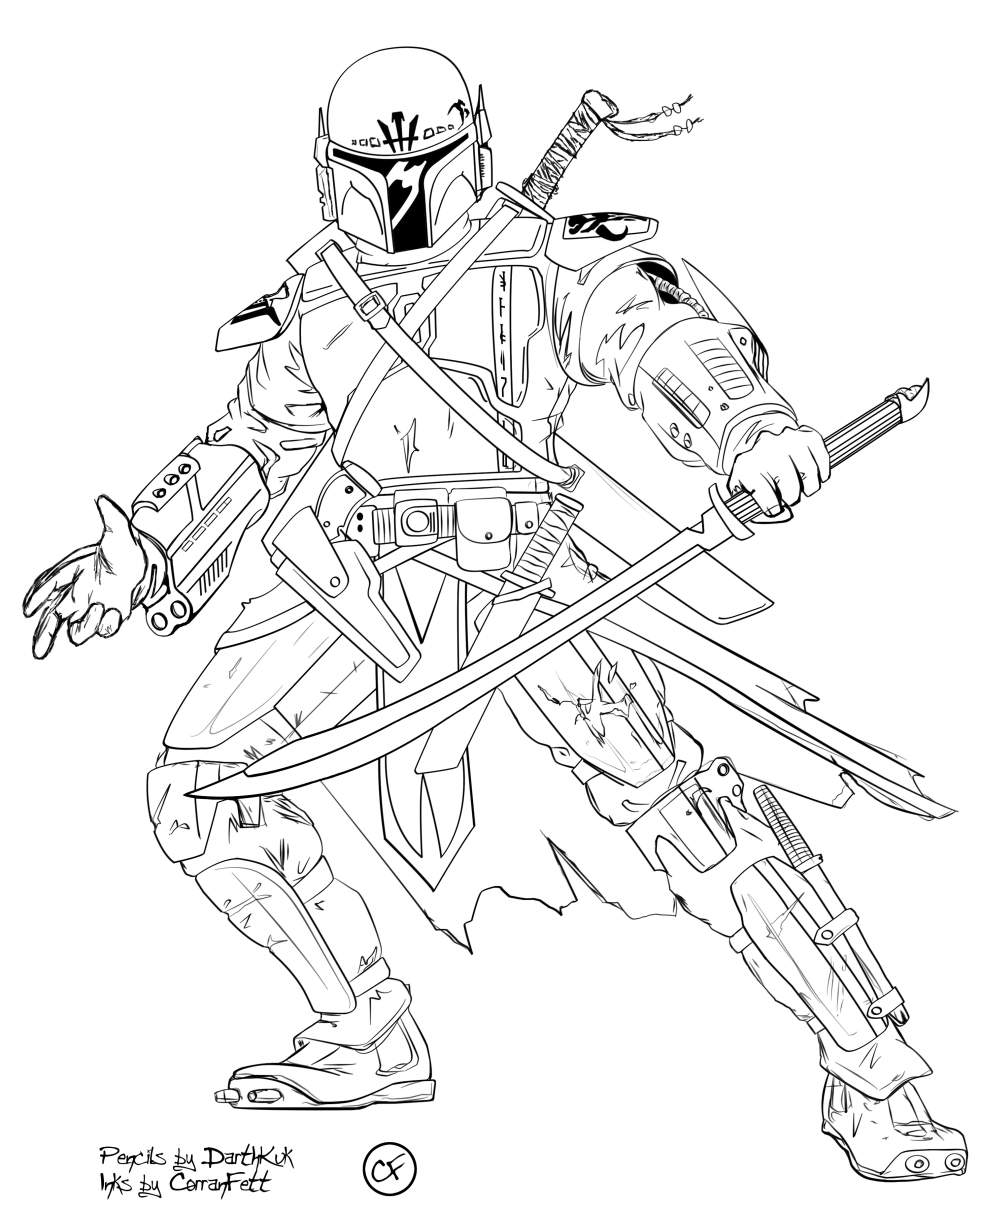 Lego Star Wars Coloring Pages Coloring Pages For Boys 7 Free